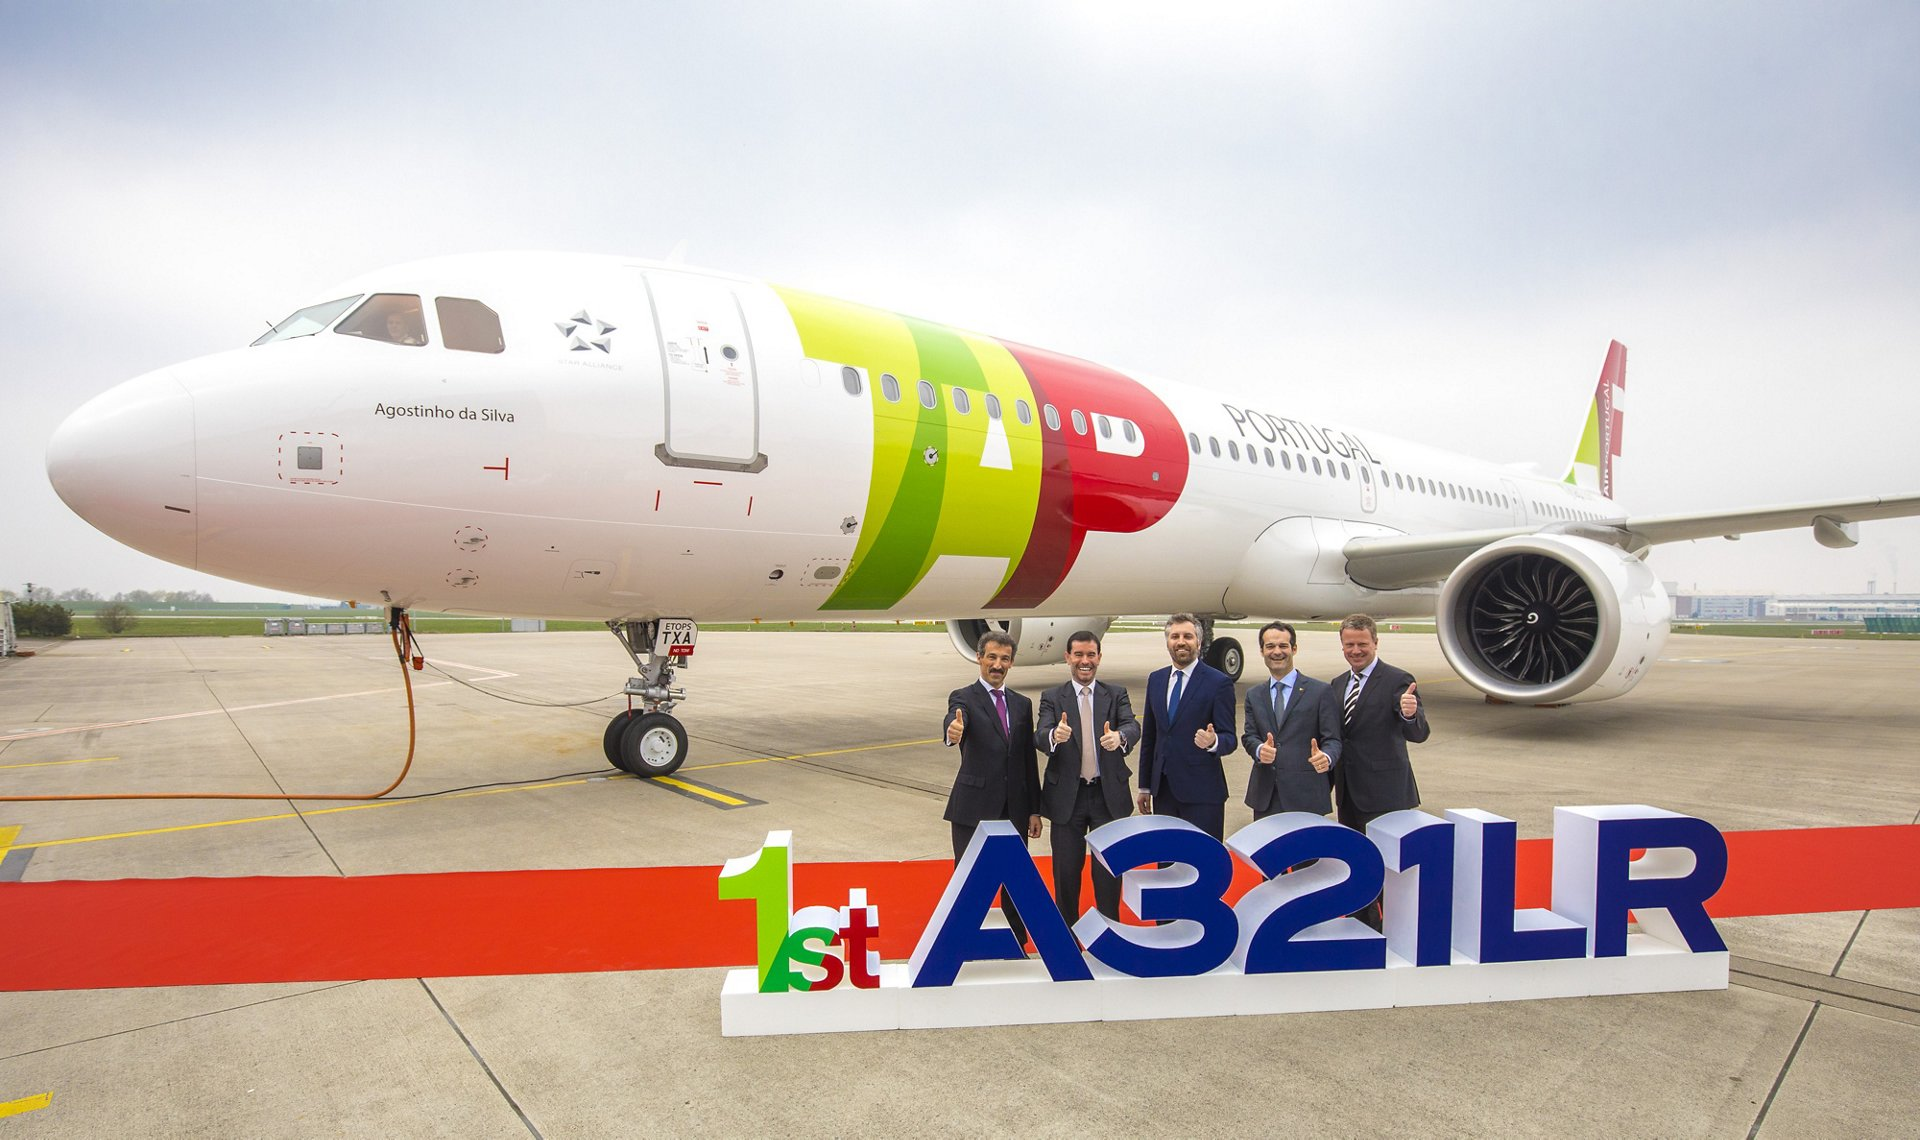 The delivery of TAP Air Portugal's first A321LR is marked by (from left to right): Bruno Castola, General Manager Airbus Programmes, CFM International; Miguel Frasquilho, Chairman, TAP Air Portugal; Pedro Nuno Santos, Minister of Infrastructures and Housing, XXI Constitutional Government of Portugal; Antonoaldo Neves, Chief Executive Officer, TAP Air Portugal; and Klaus Röwe, Senior Vice President - Head of A320 Family, Airbus